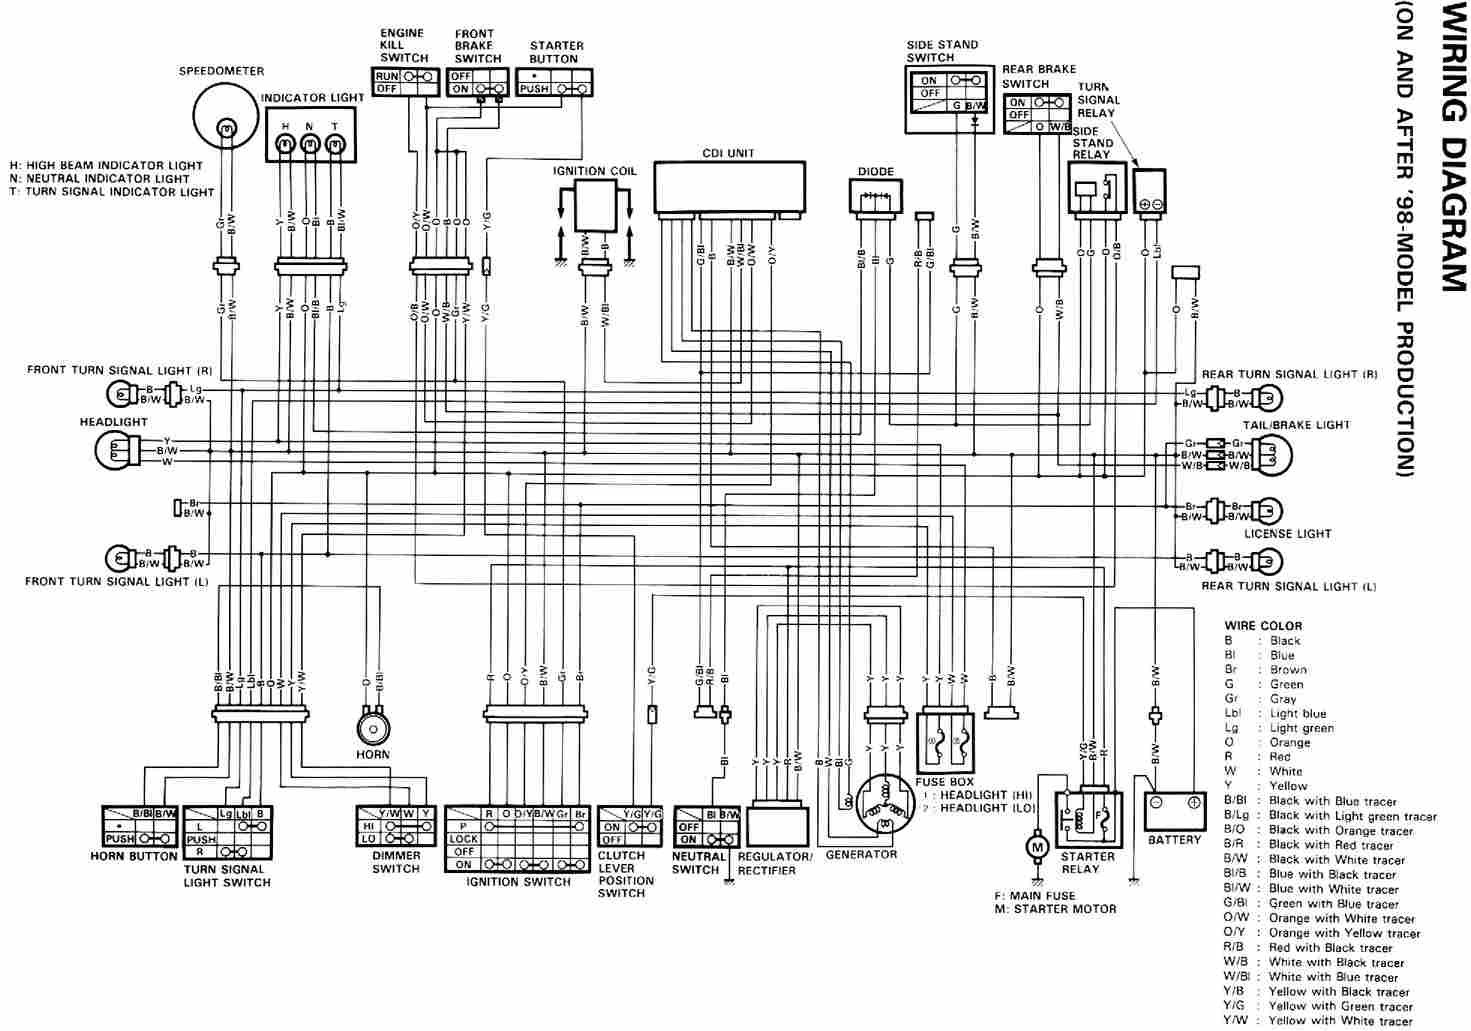 2004 Yamaha R6 Wiring Diagram | Find image on